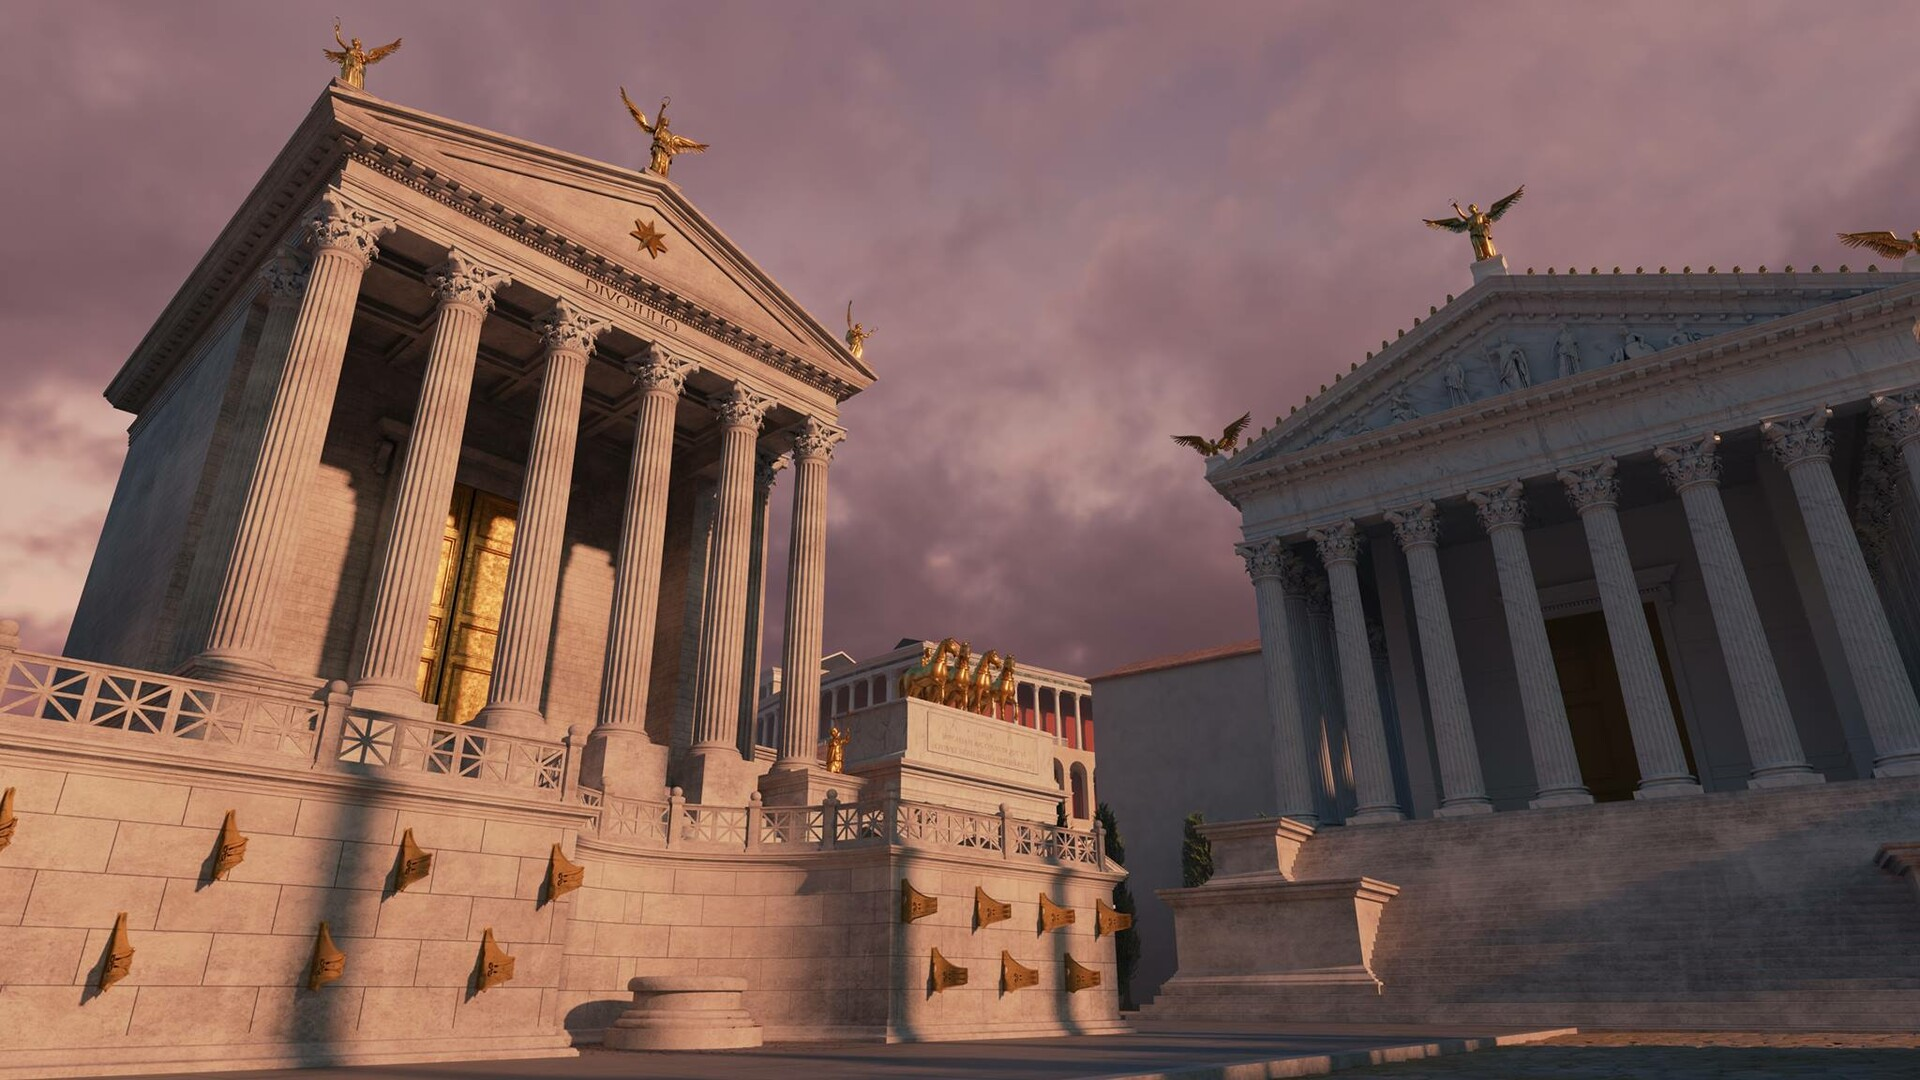 Roman Forum - Responsible for all the statues in the buildings - Modelling, rigging and posing.